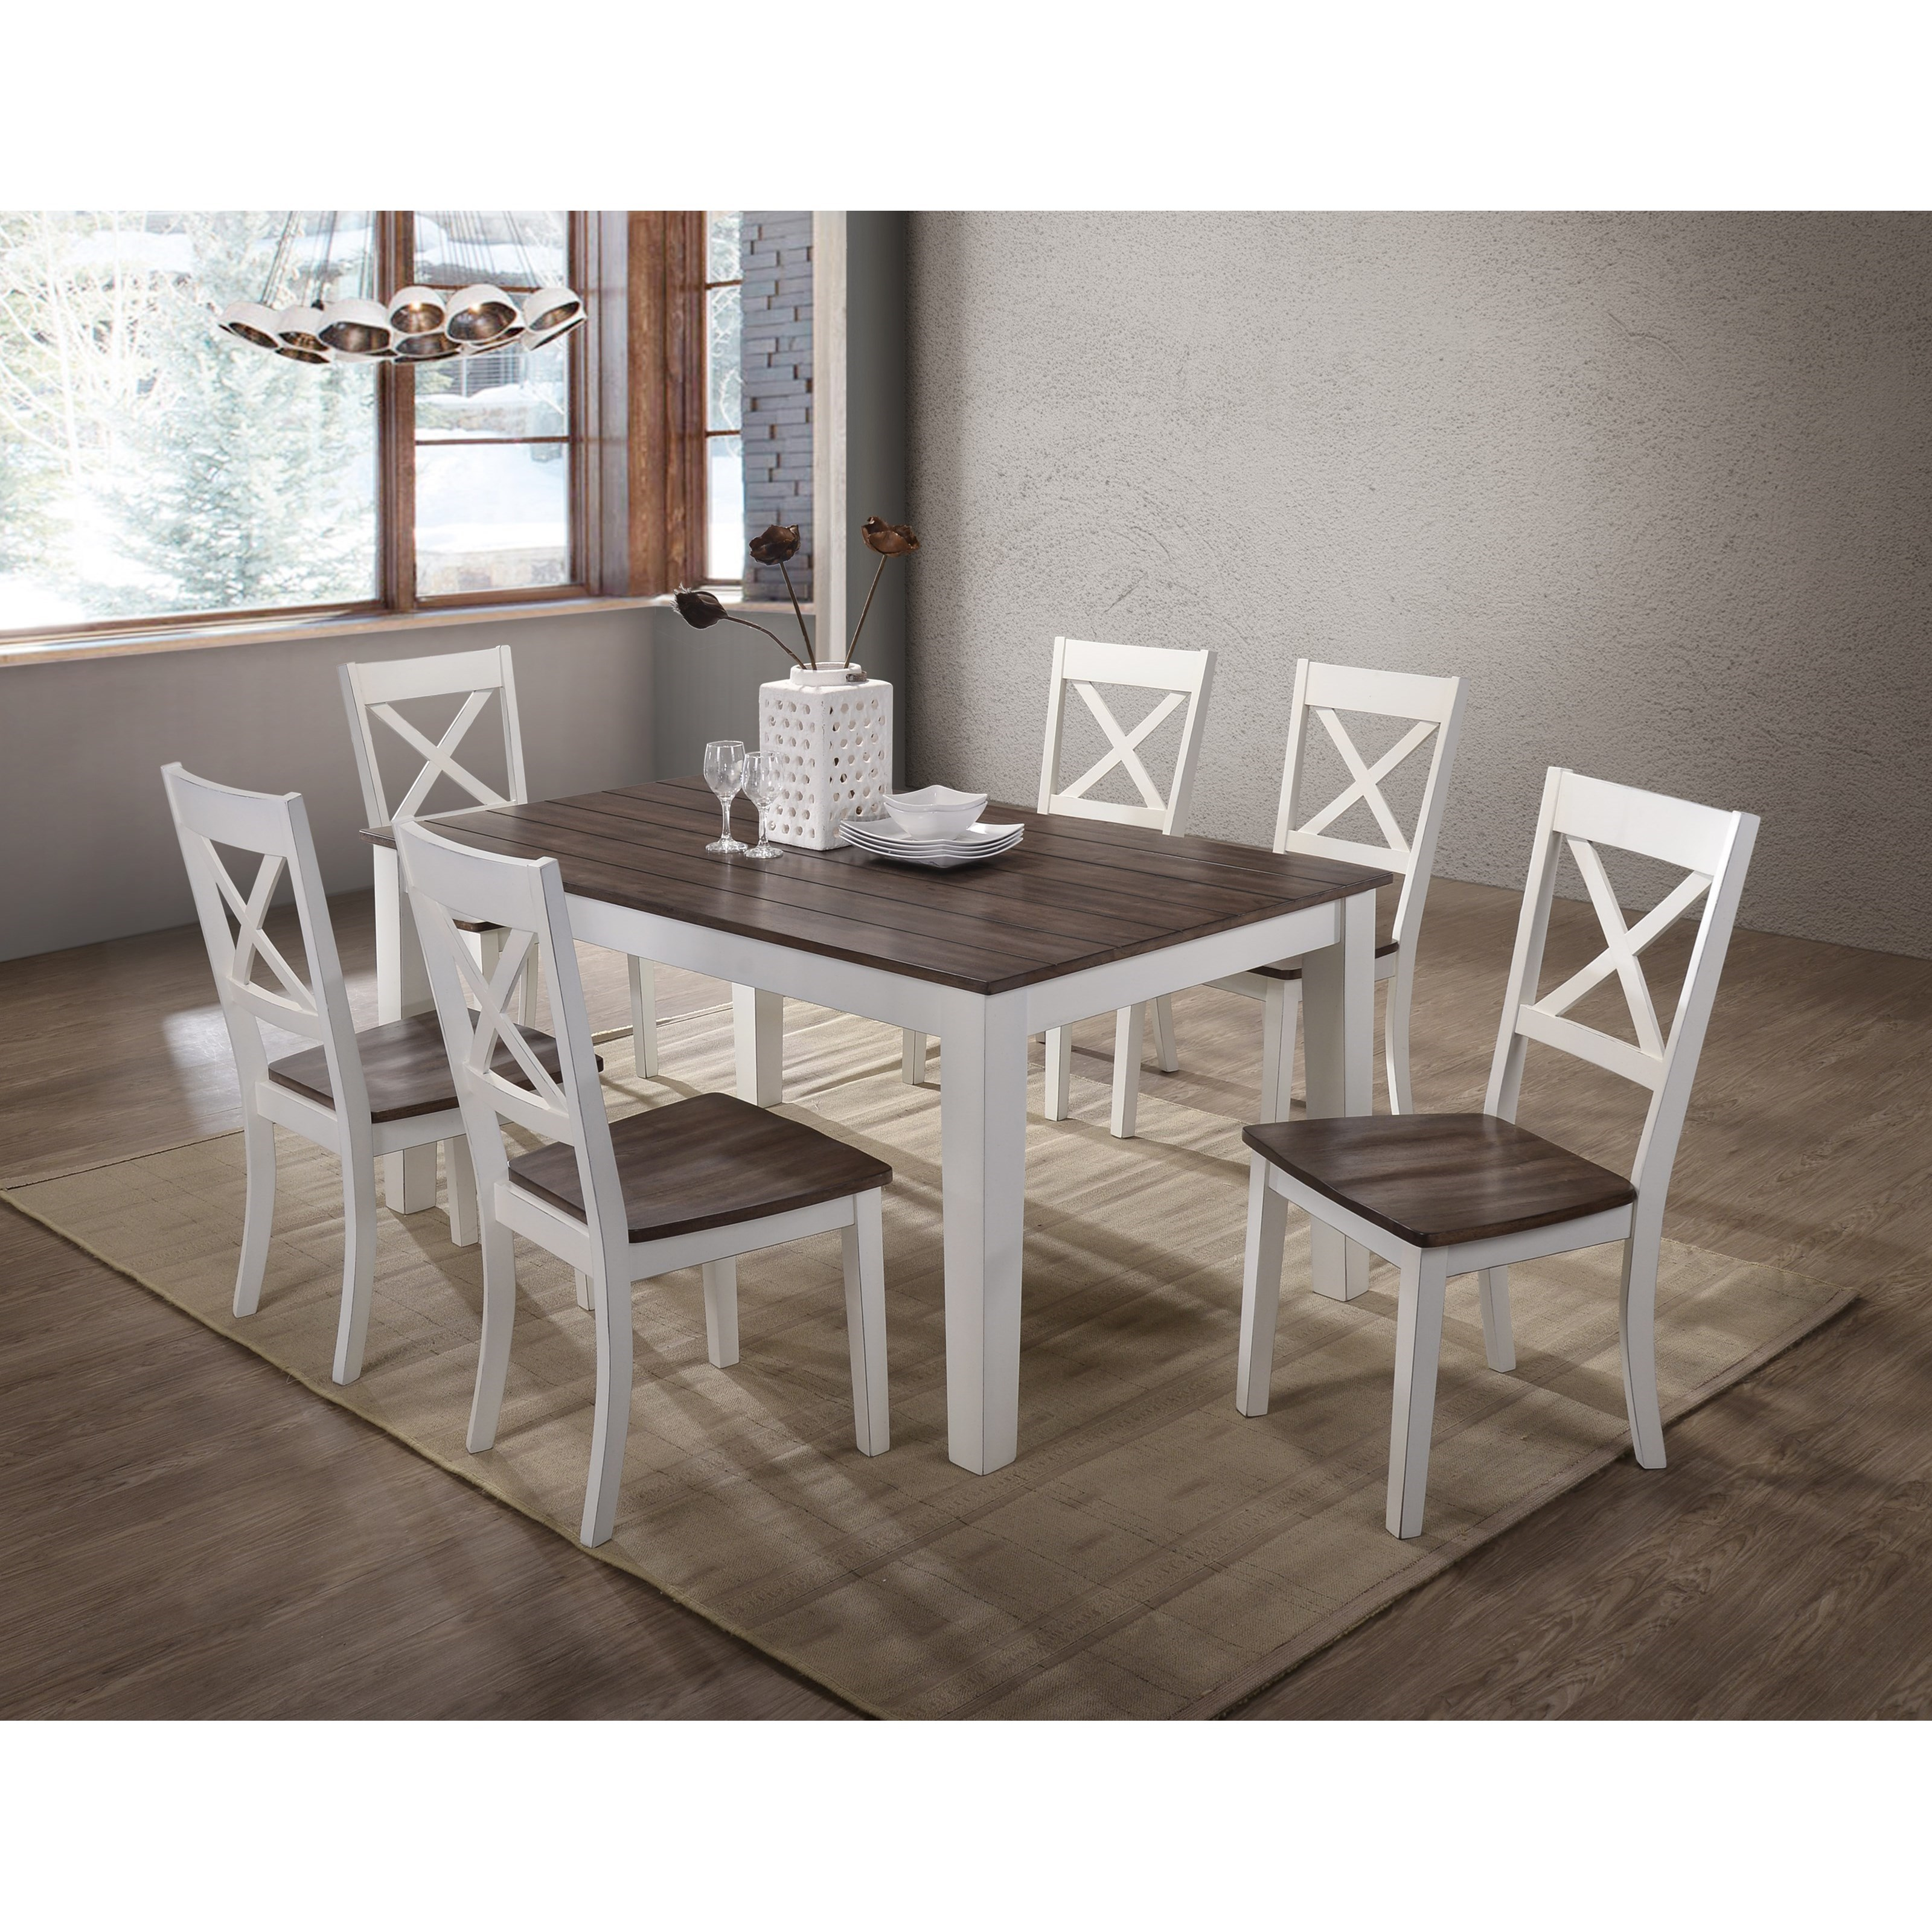 5057 7 Piece Table and Chair Set by United Furniture Industries at Value City Furniture